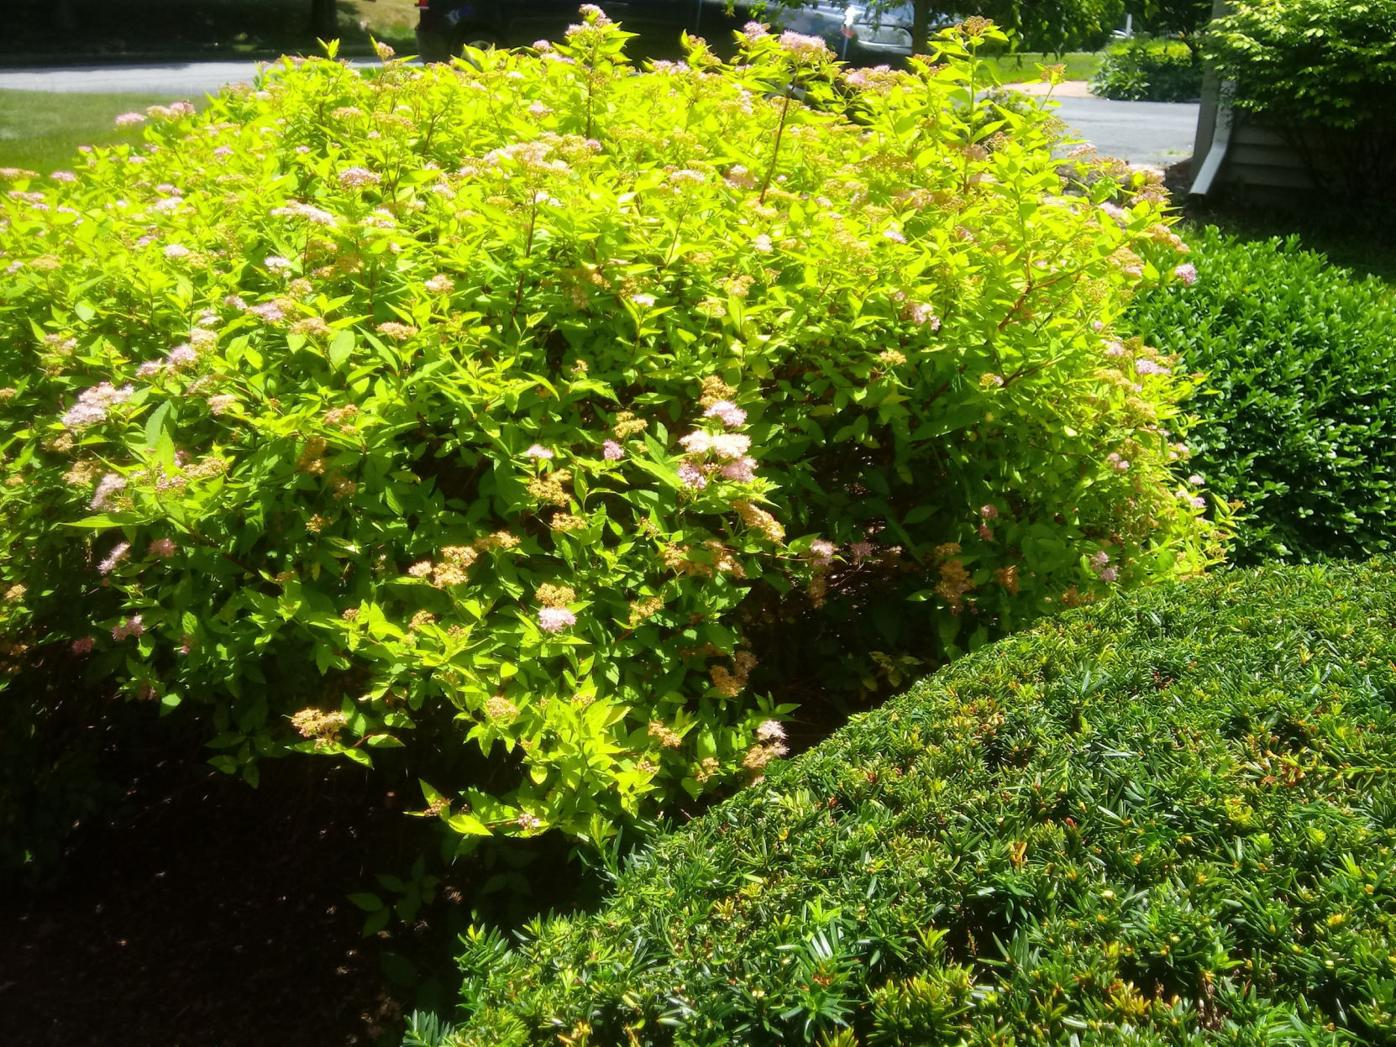 Yew in foreground, spirea in background.